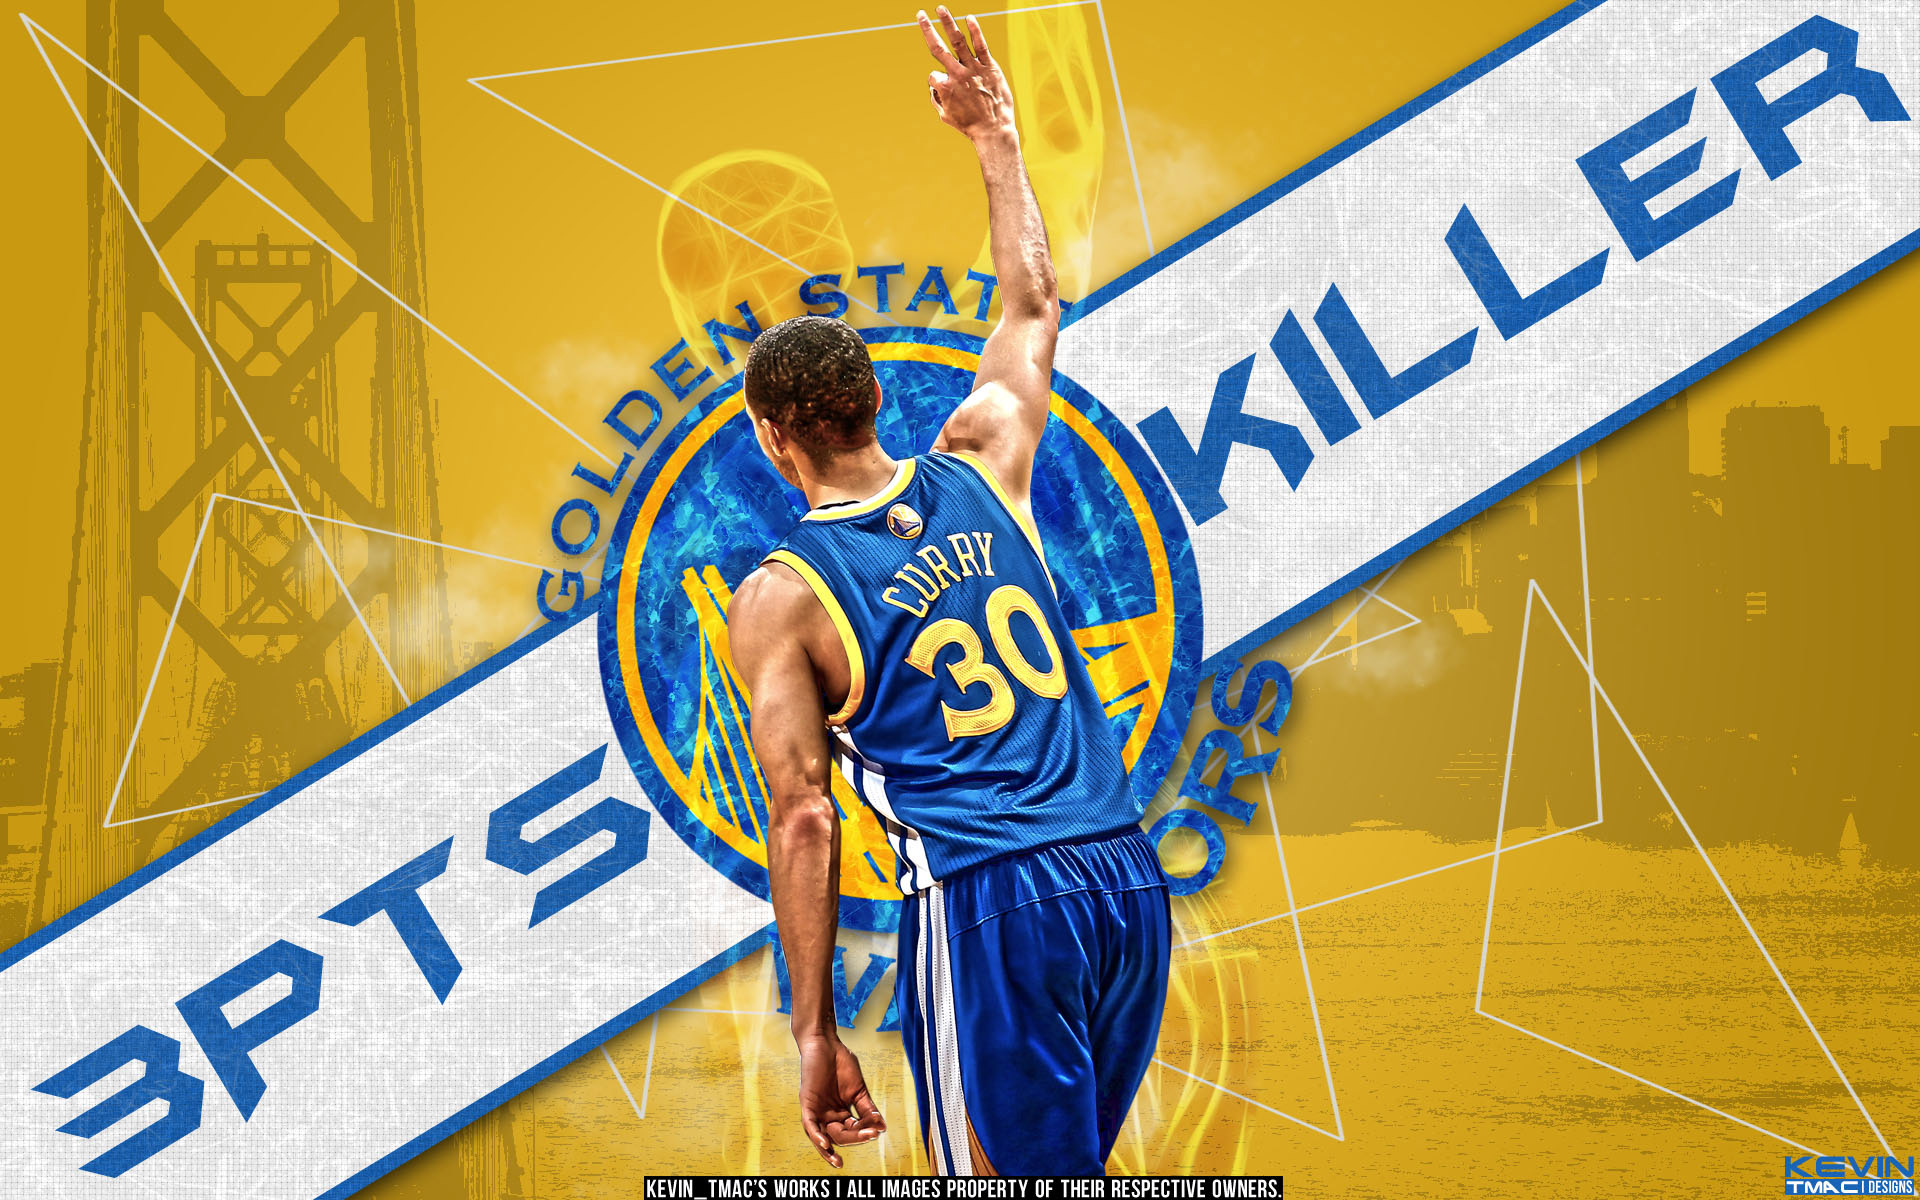 FunMozar Stephen Curry Splash Wallpaper 1920x1200